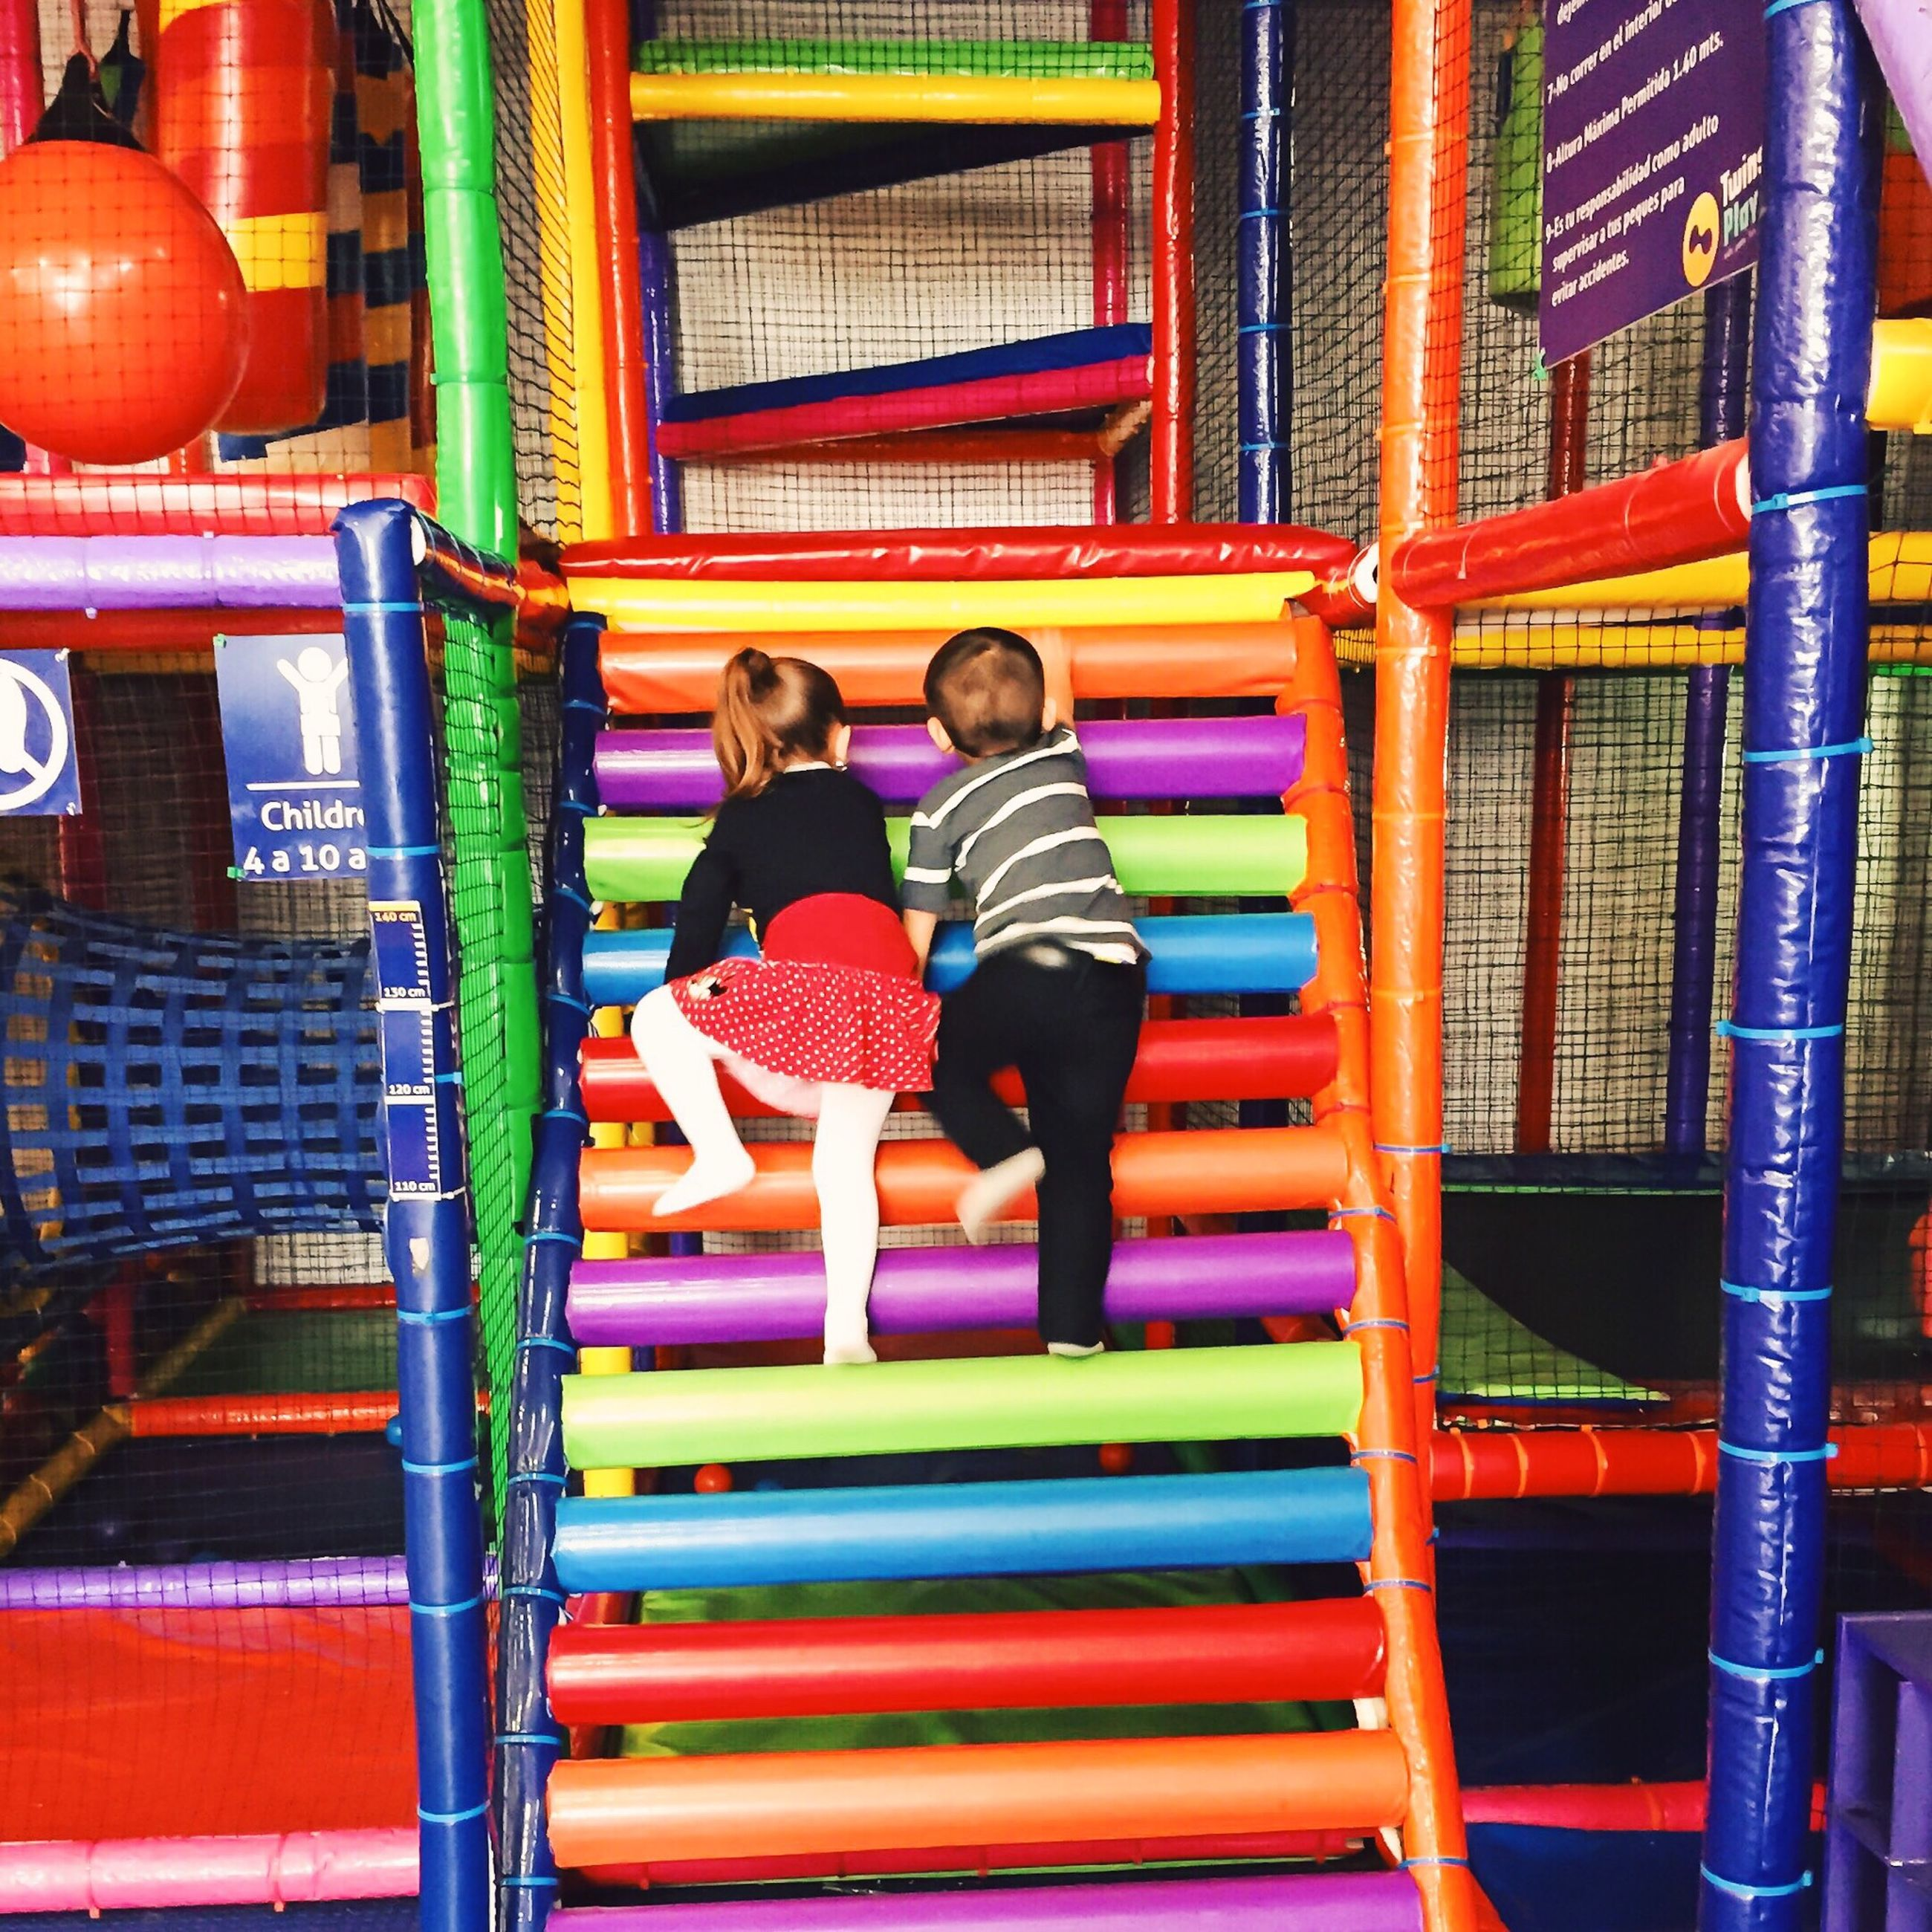 childhood, boys, lifestyles, elementary age, full length, girls, leisure activity, casual clothing, togetherness, bonding, love, innocence, family, playing, person, family with one child, fun